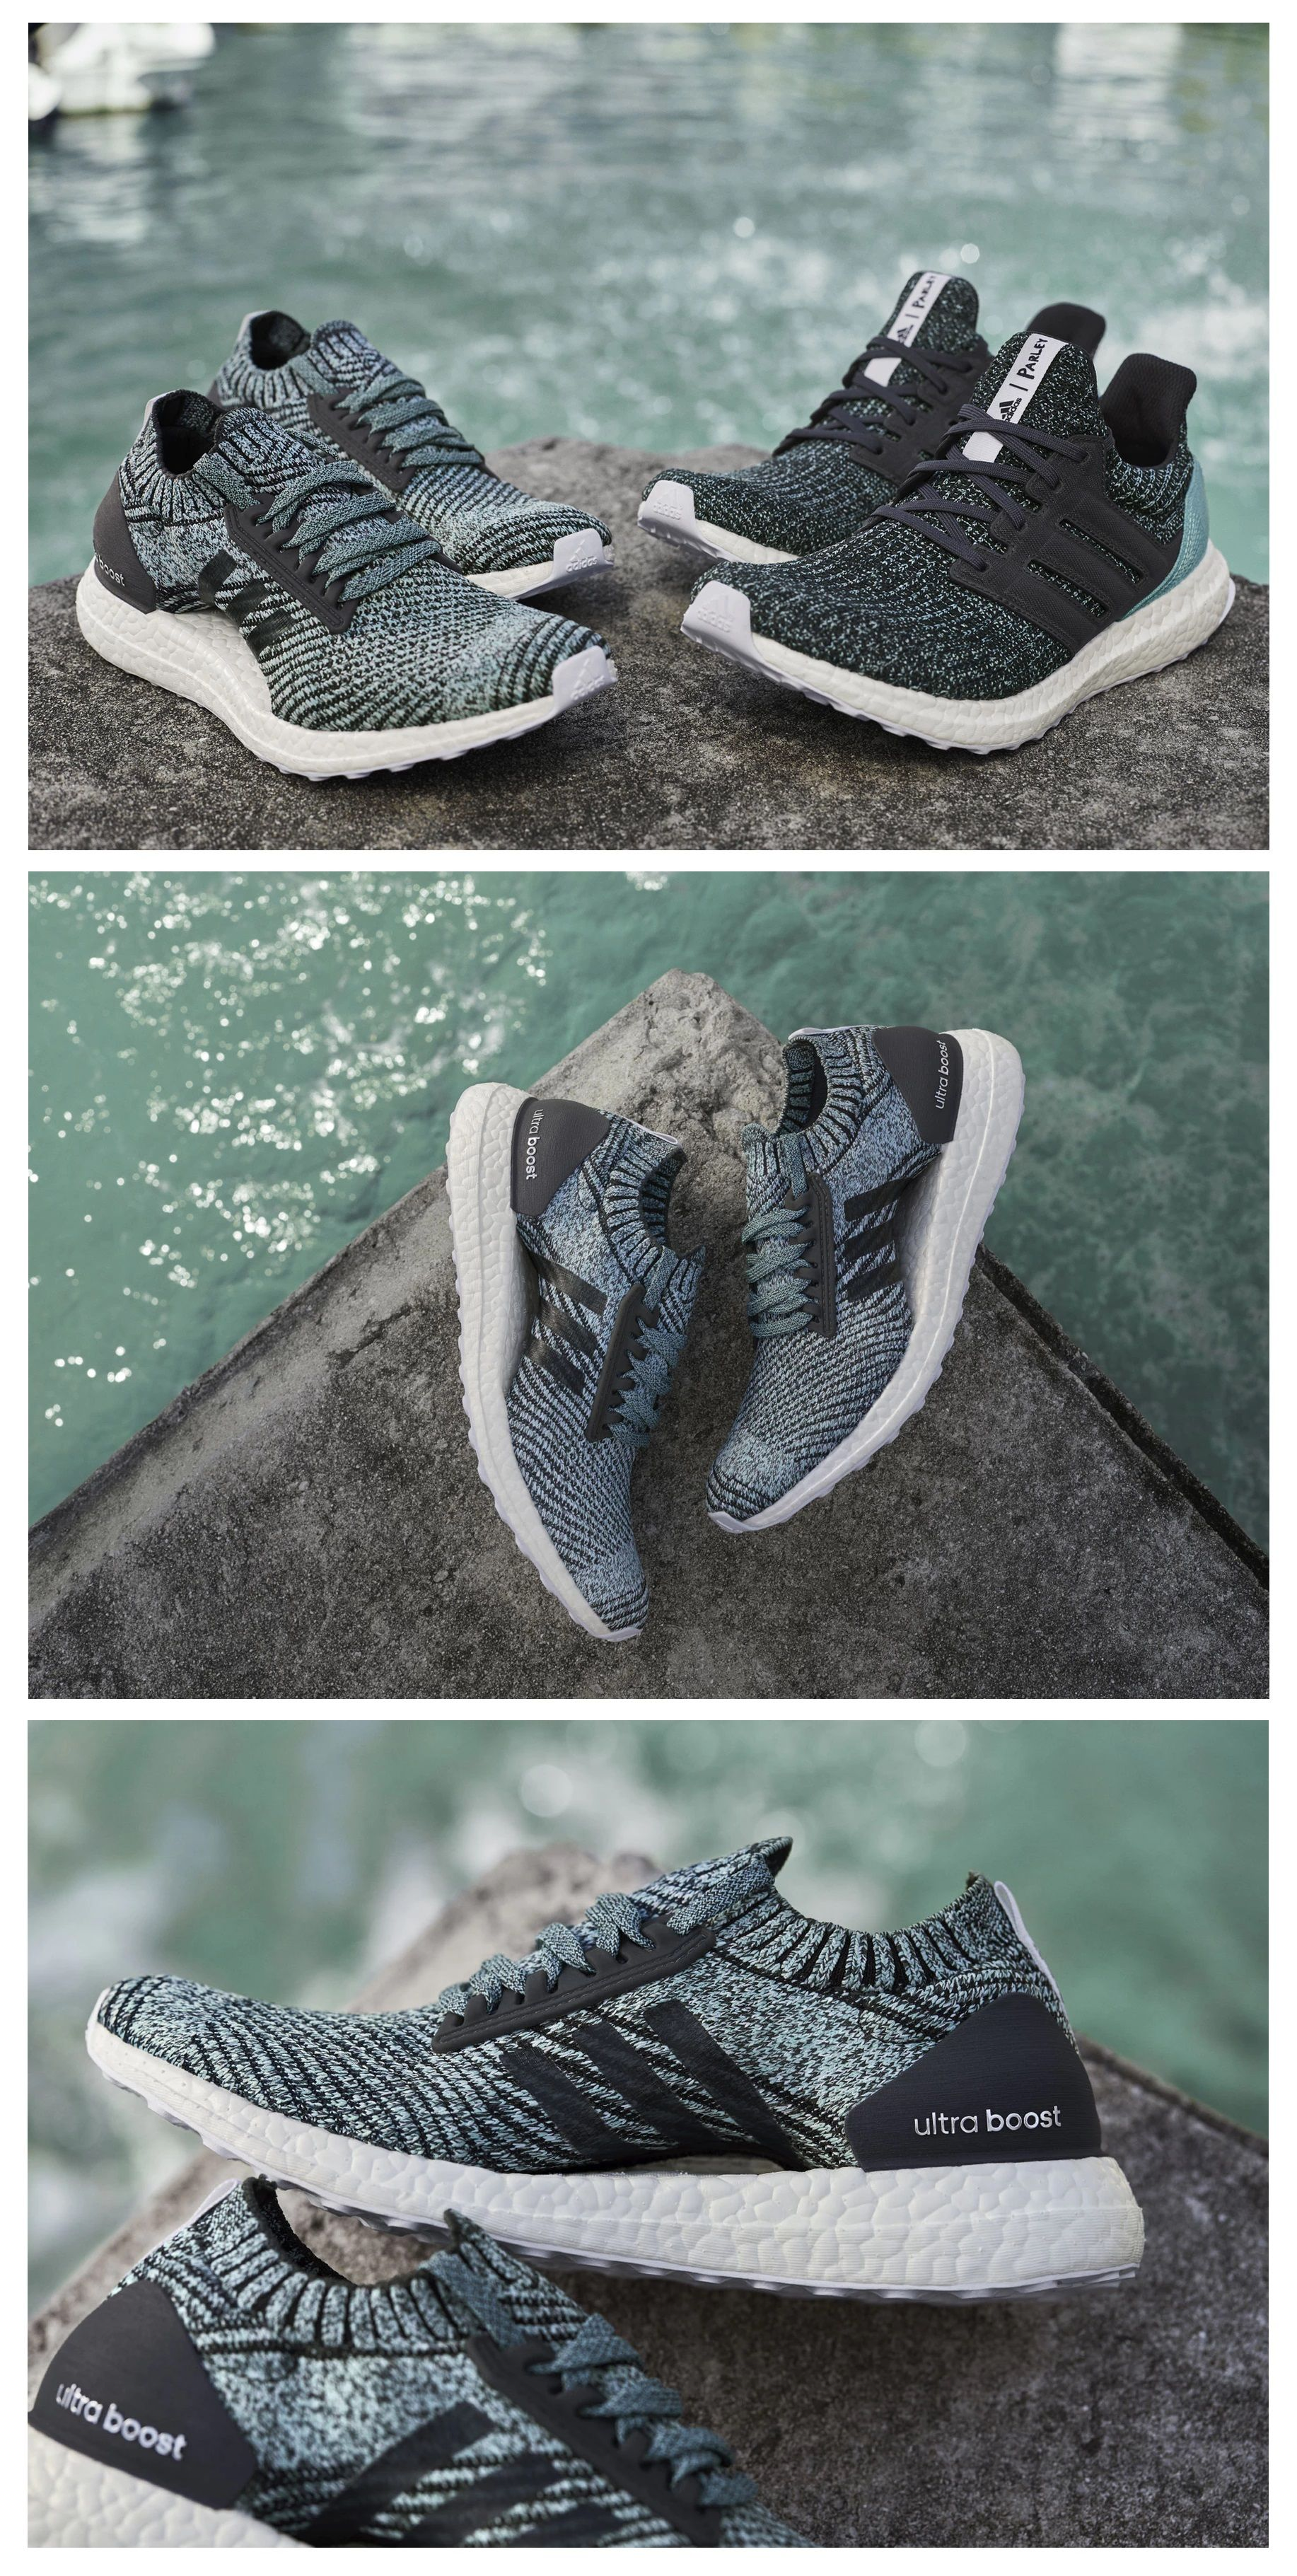 4652d288657 Parley x adidas Ultra Boost